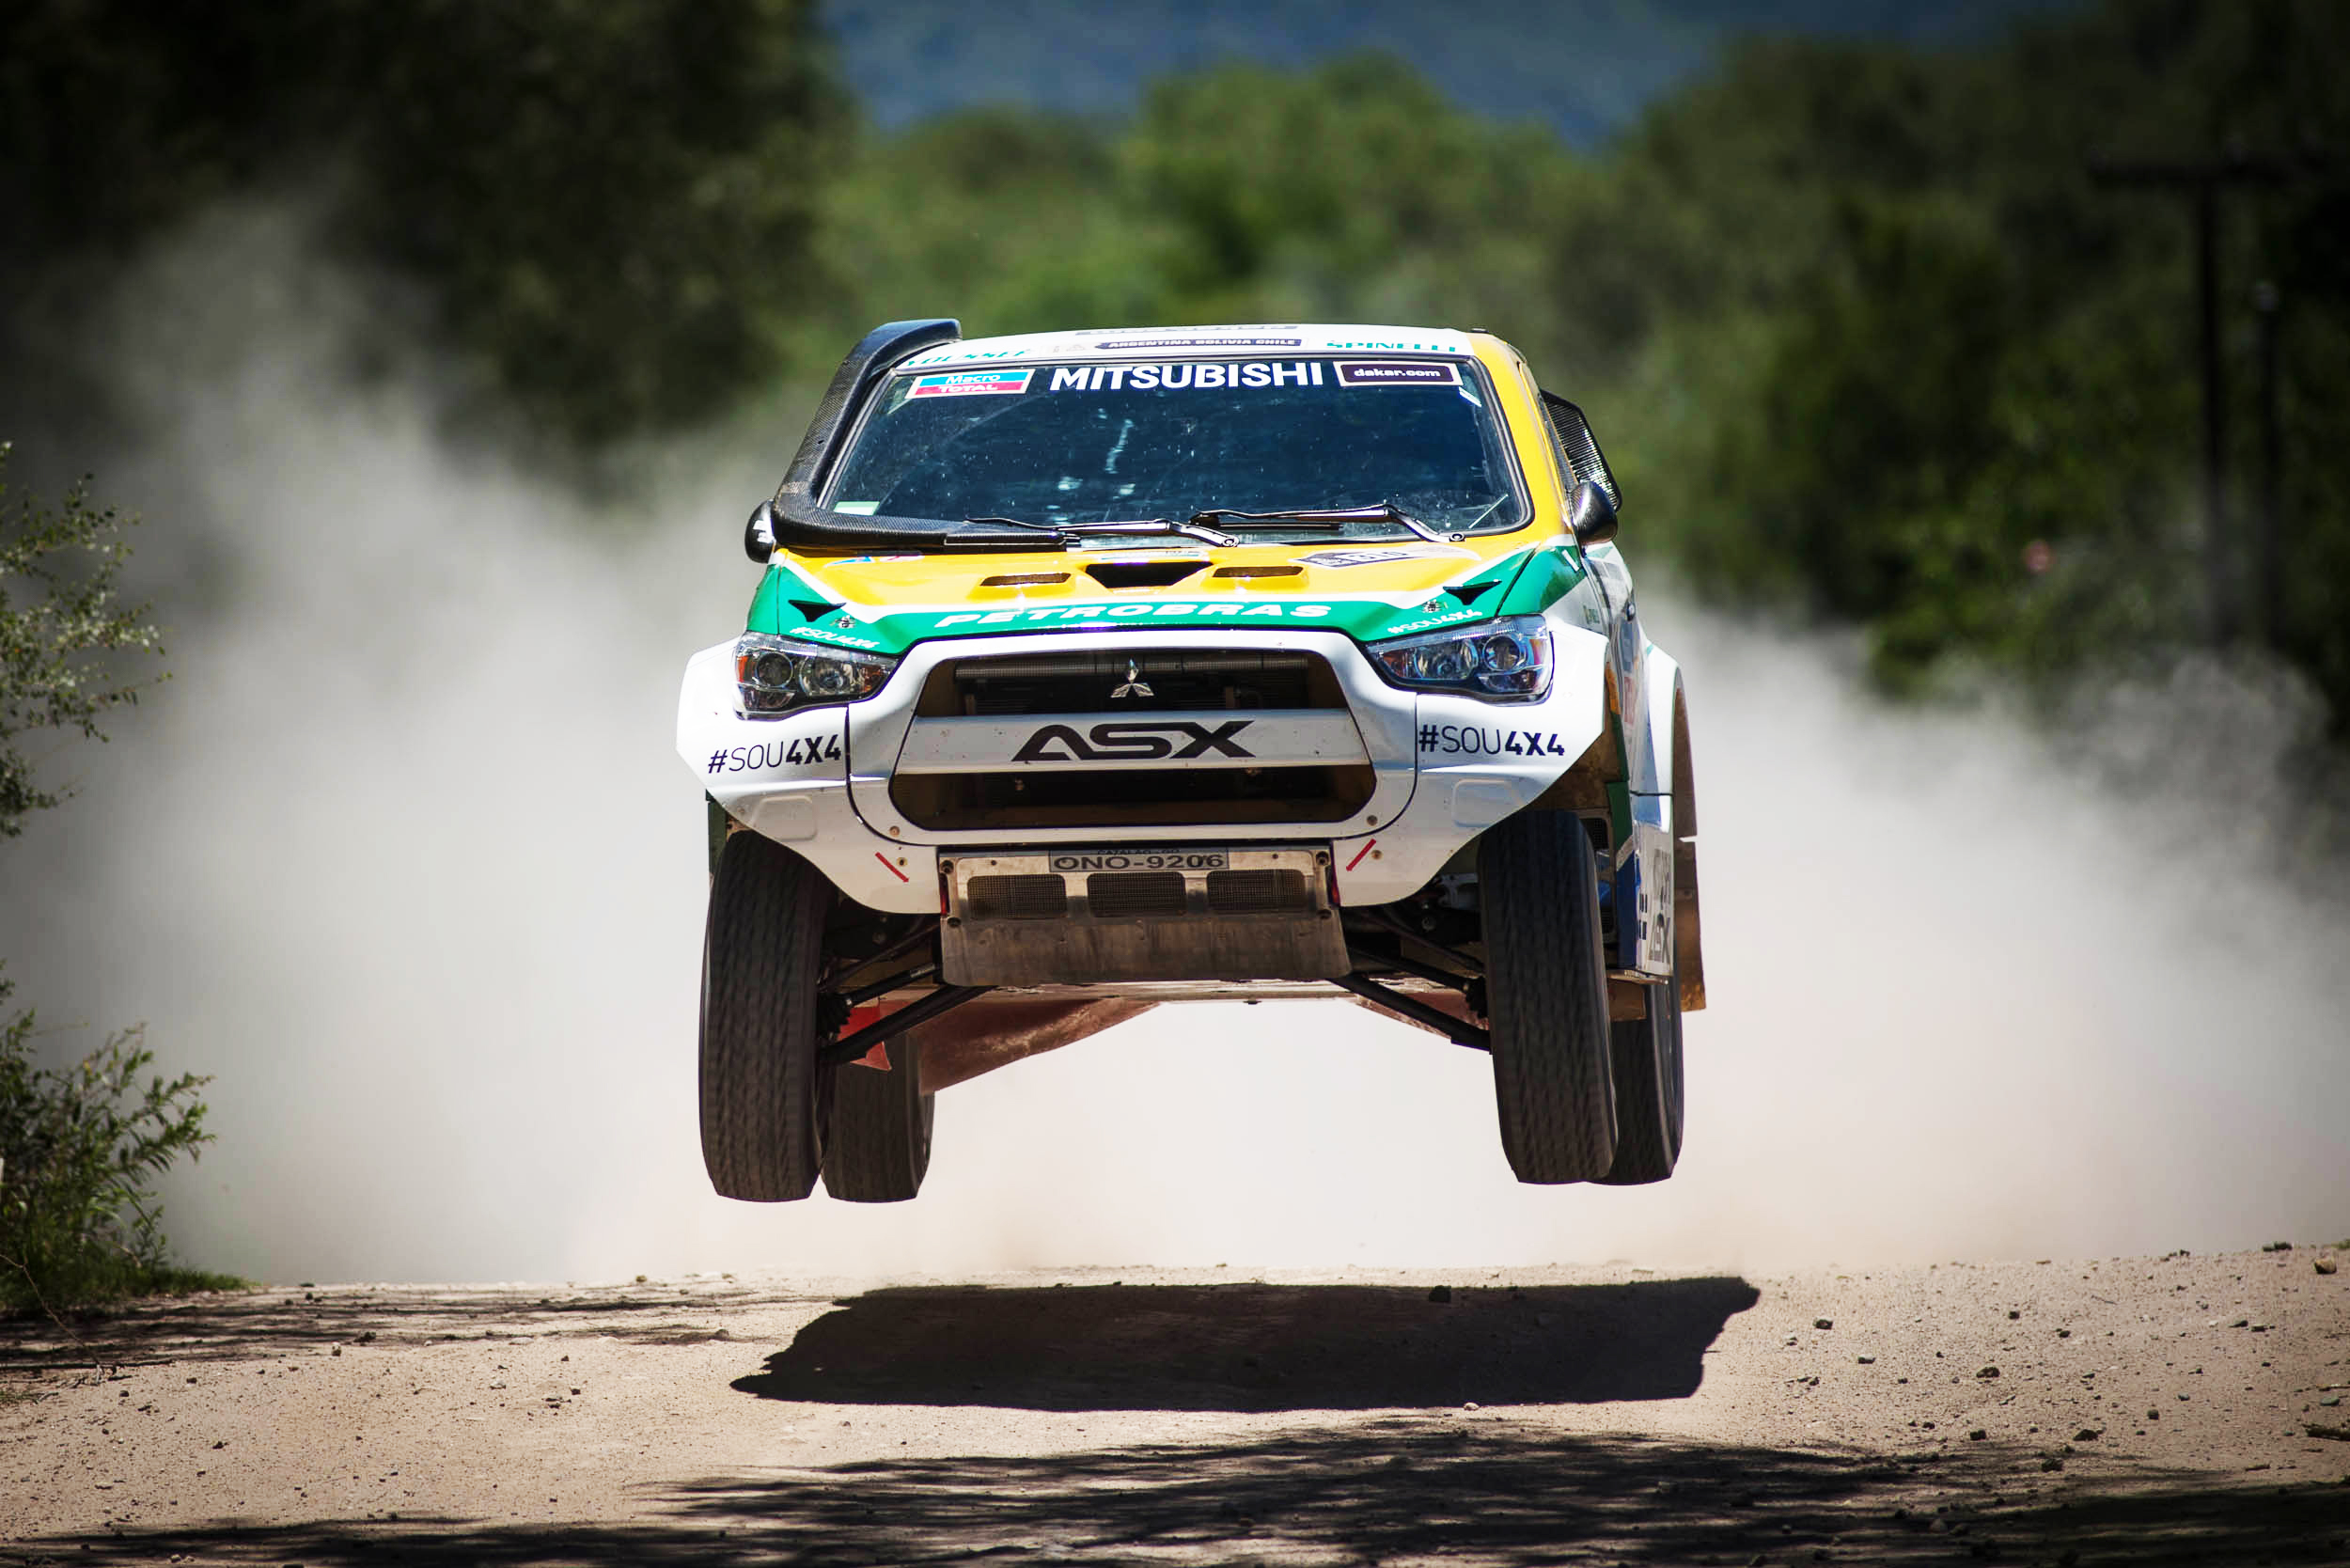 116081 download wallpaper Cars, Mitsubishi, Dakar, Races, Suv screensavers and pictures for free